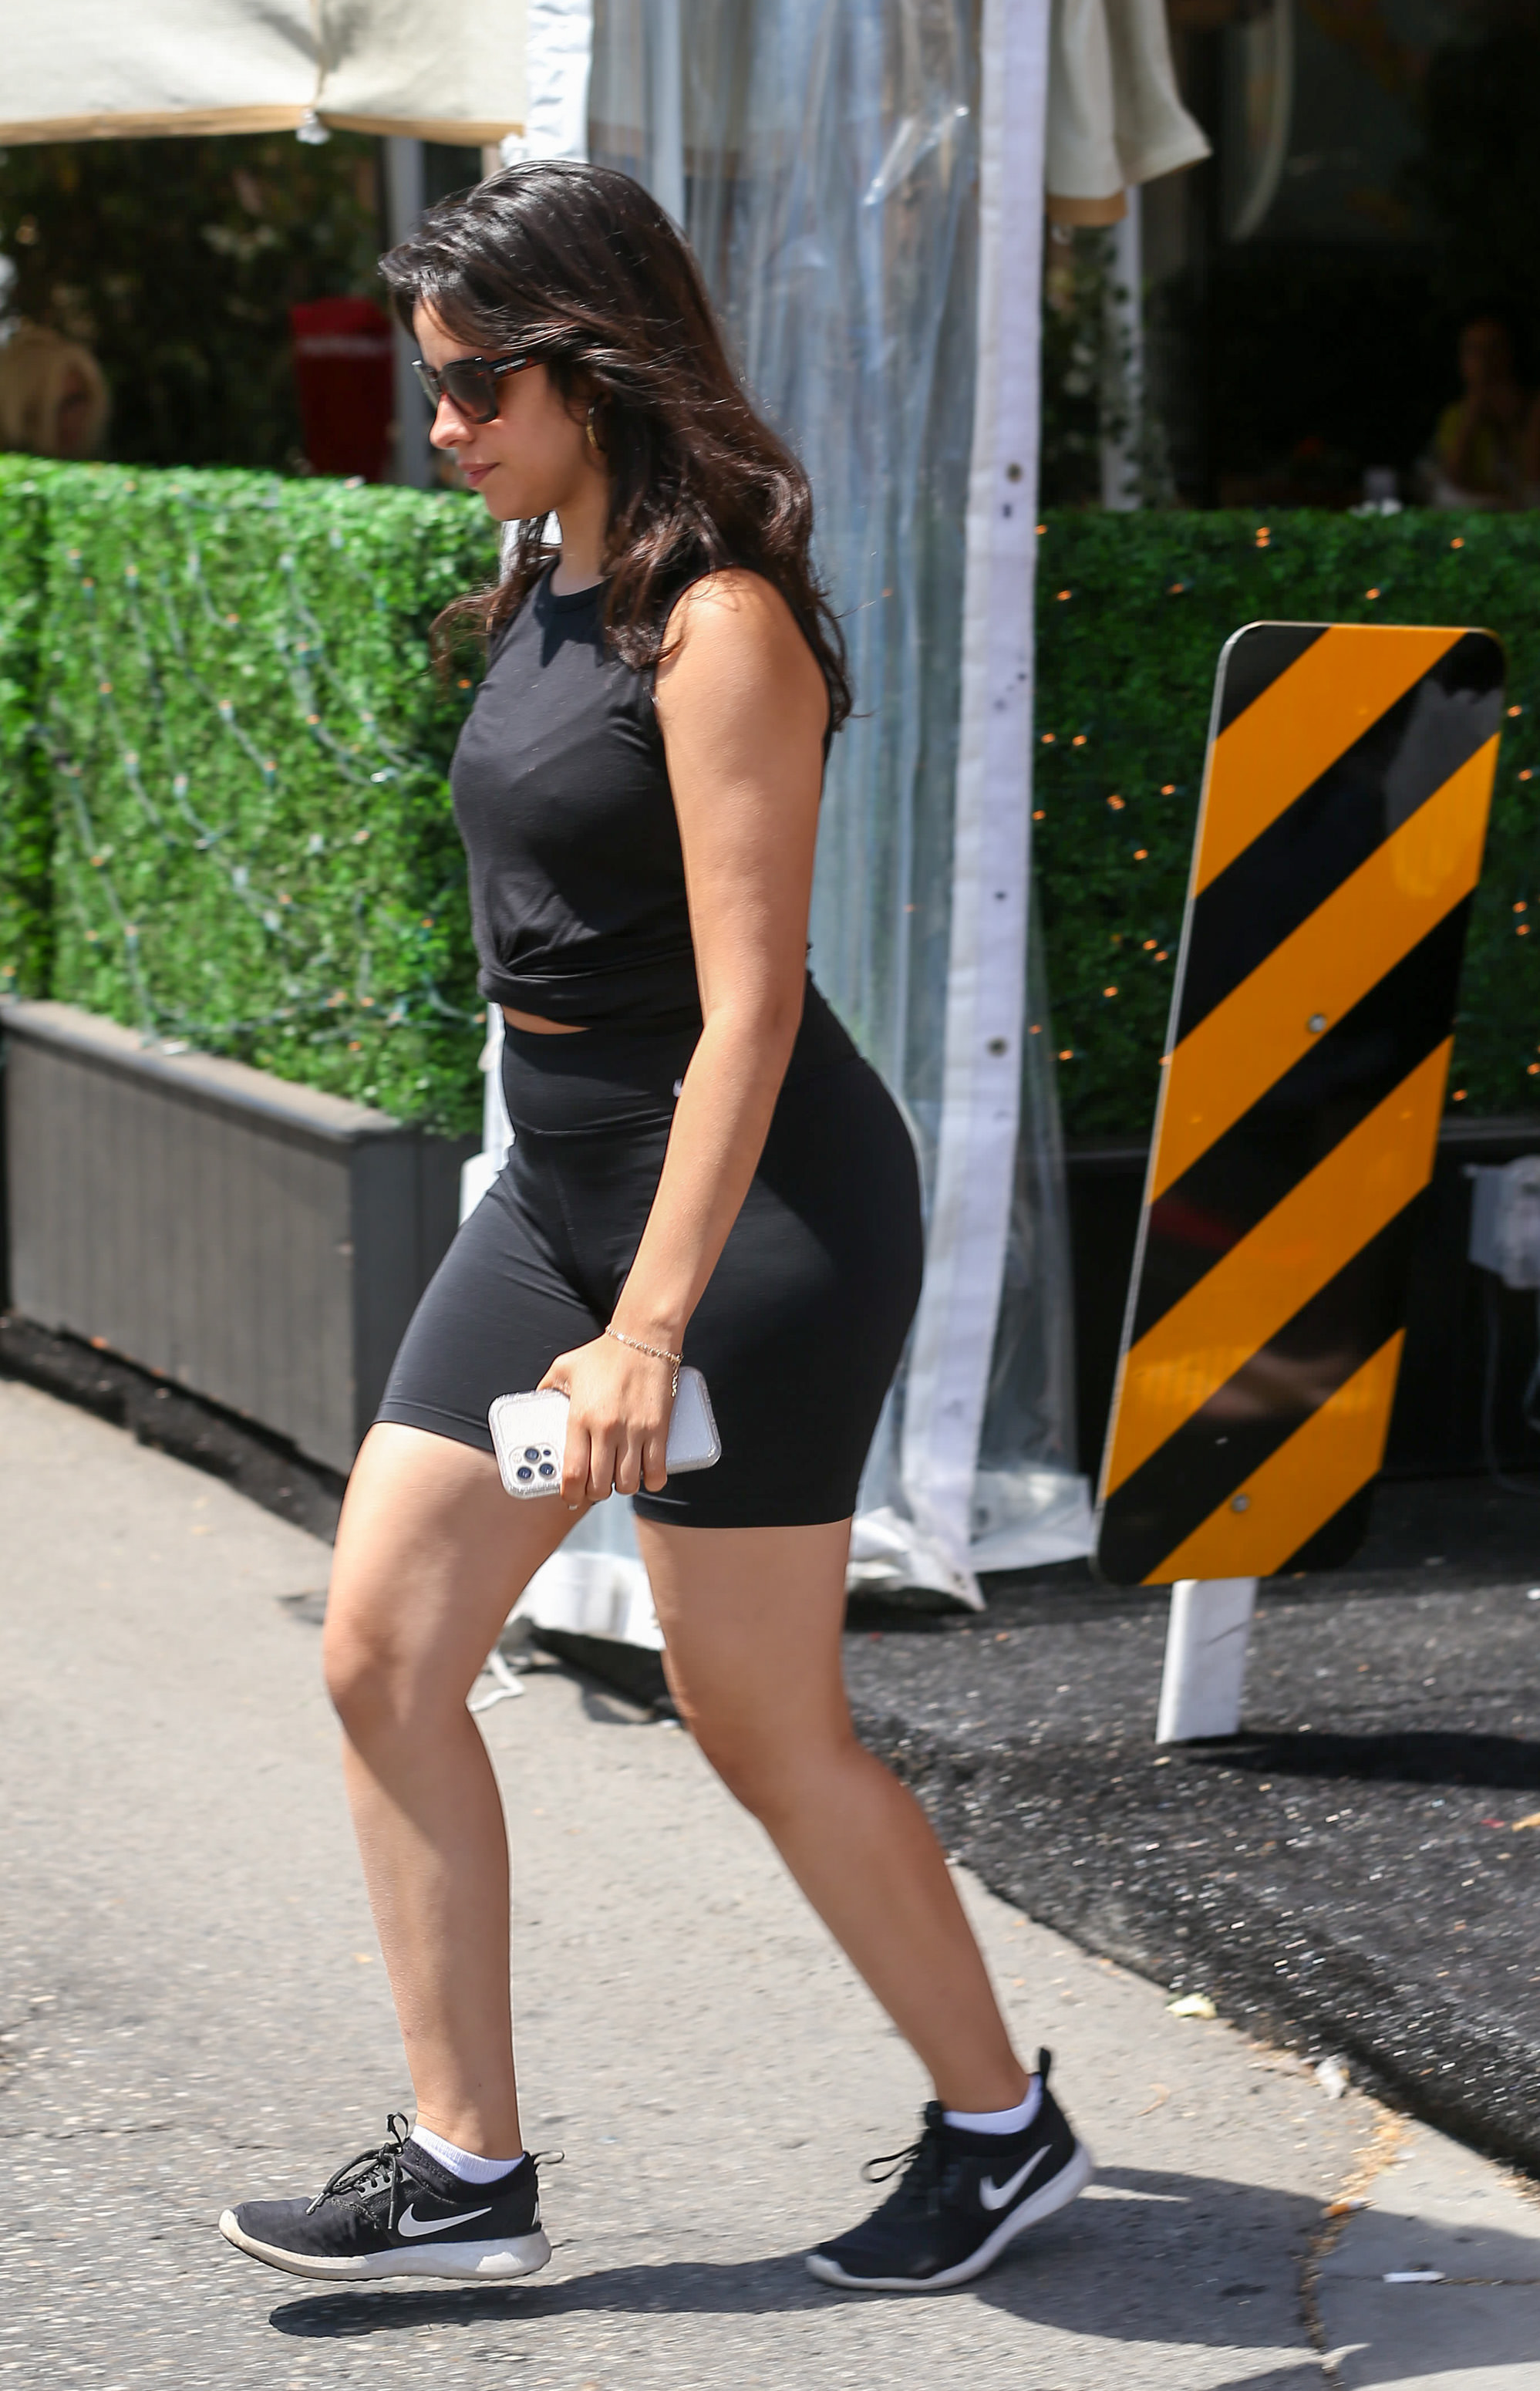 Camila Cabello Flaunts Her Curves in All-Black Workout Gear While Grabbing Lunch with Her Mom in L.A.